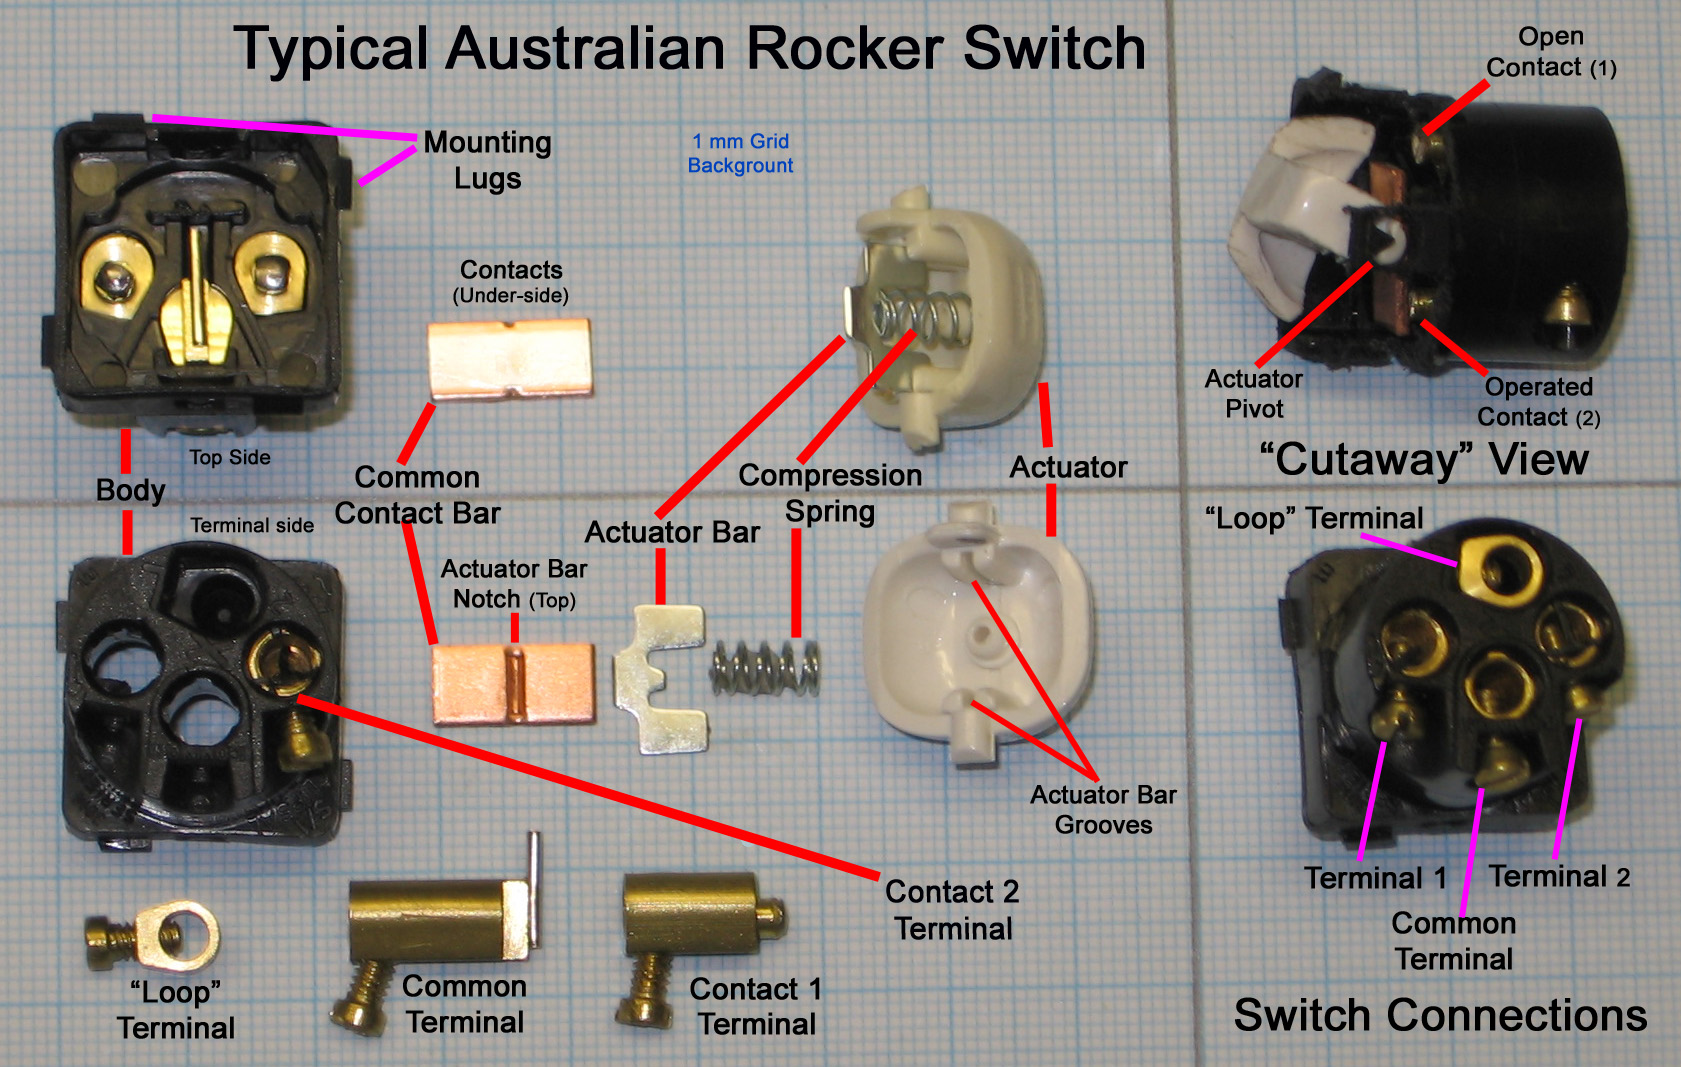 Two Way Switch Wiring Diagram Australia : File typical australian rocker switch g wikimedia commons